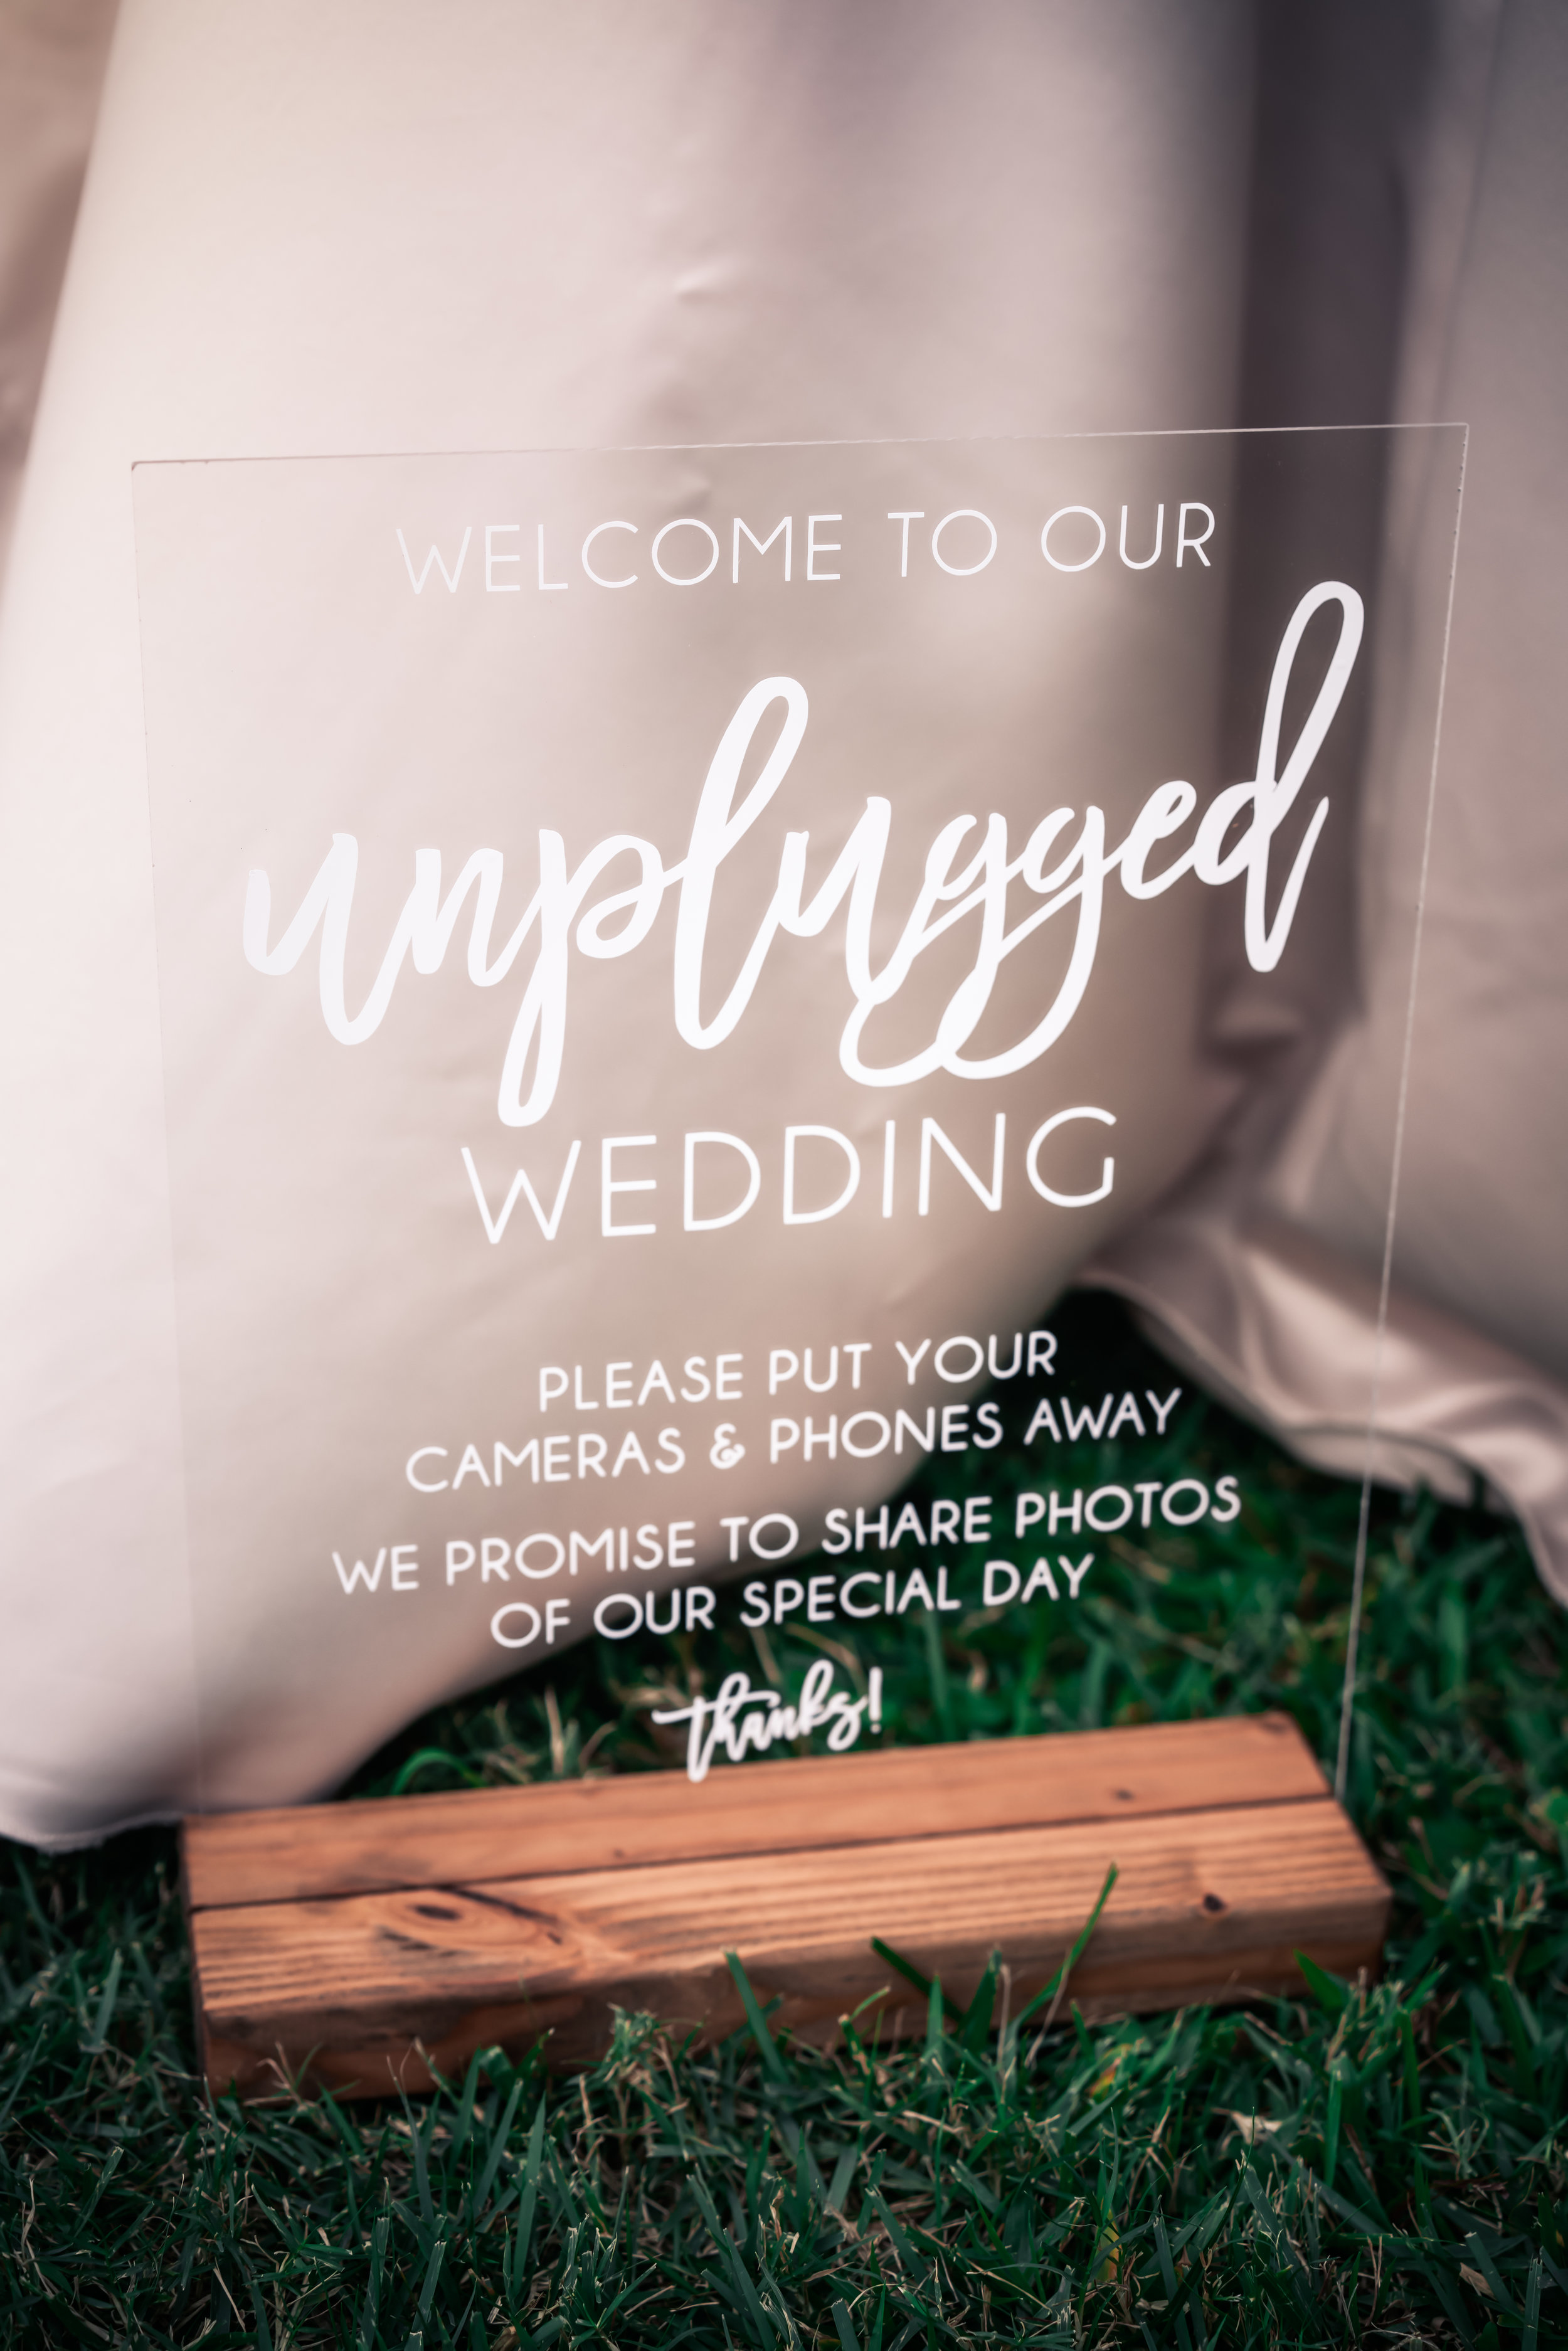 Rent our unplugged sign ($10) to politely let guests know to put away their cameras and phones during the ceremony.